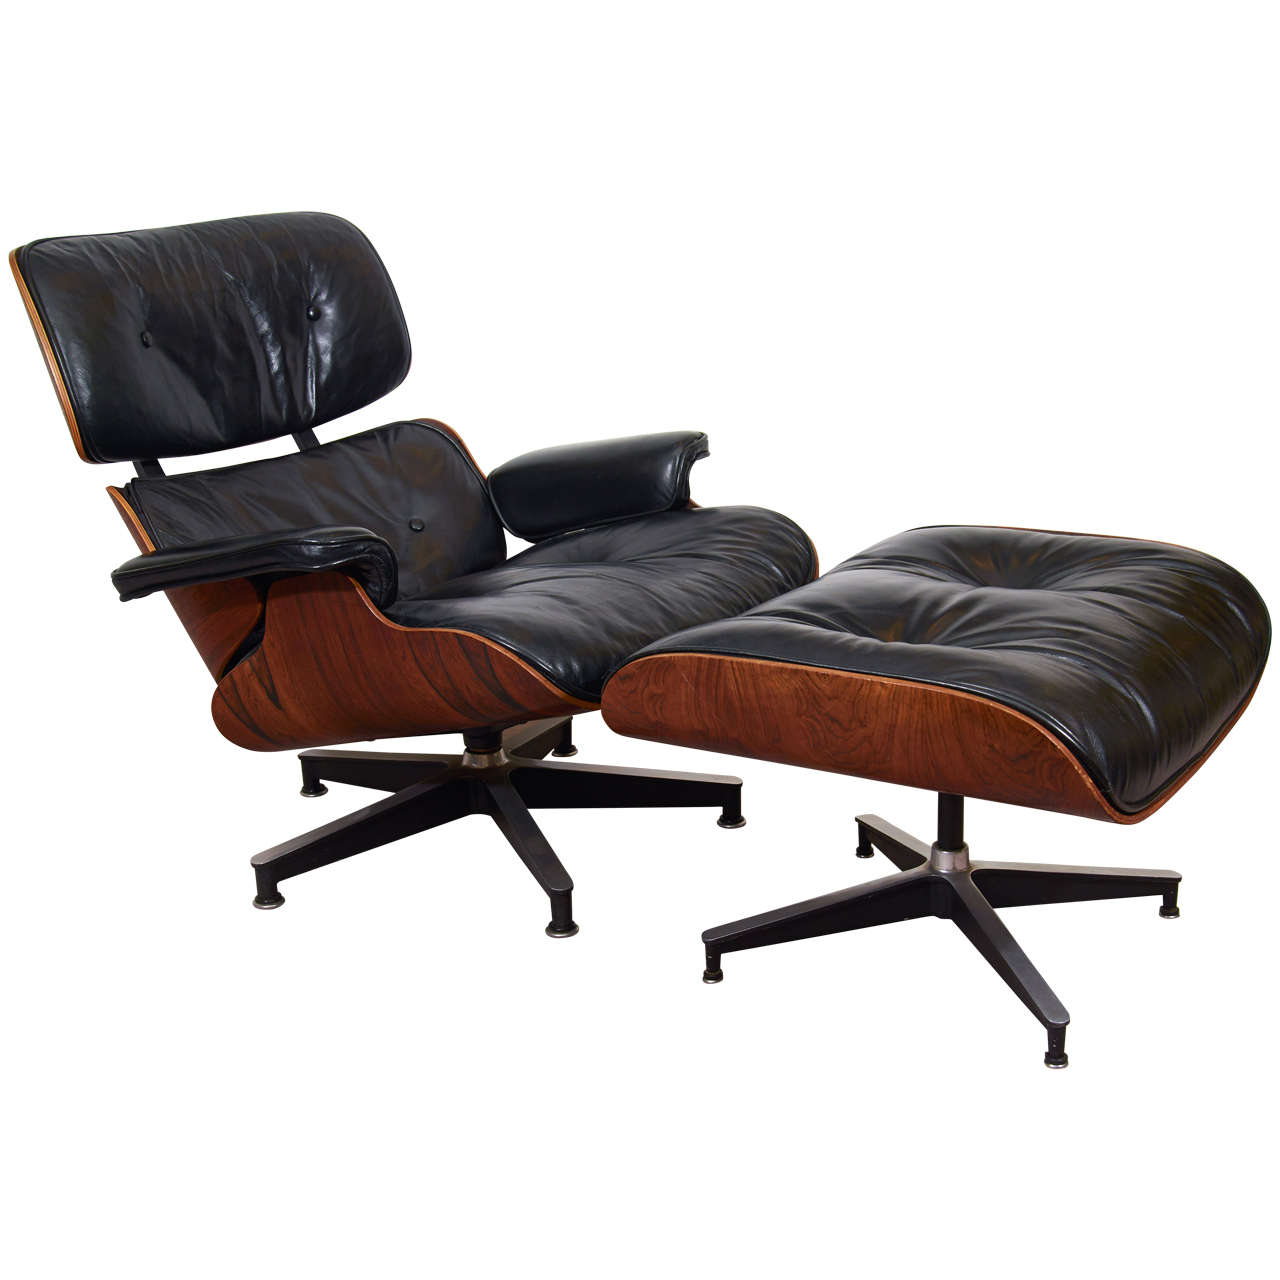 Charles and Ray Eames 670671 Lounge Chair and Ottoman at 1stdibs